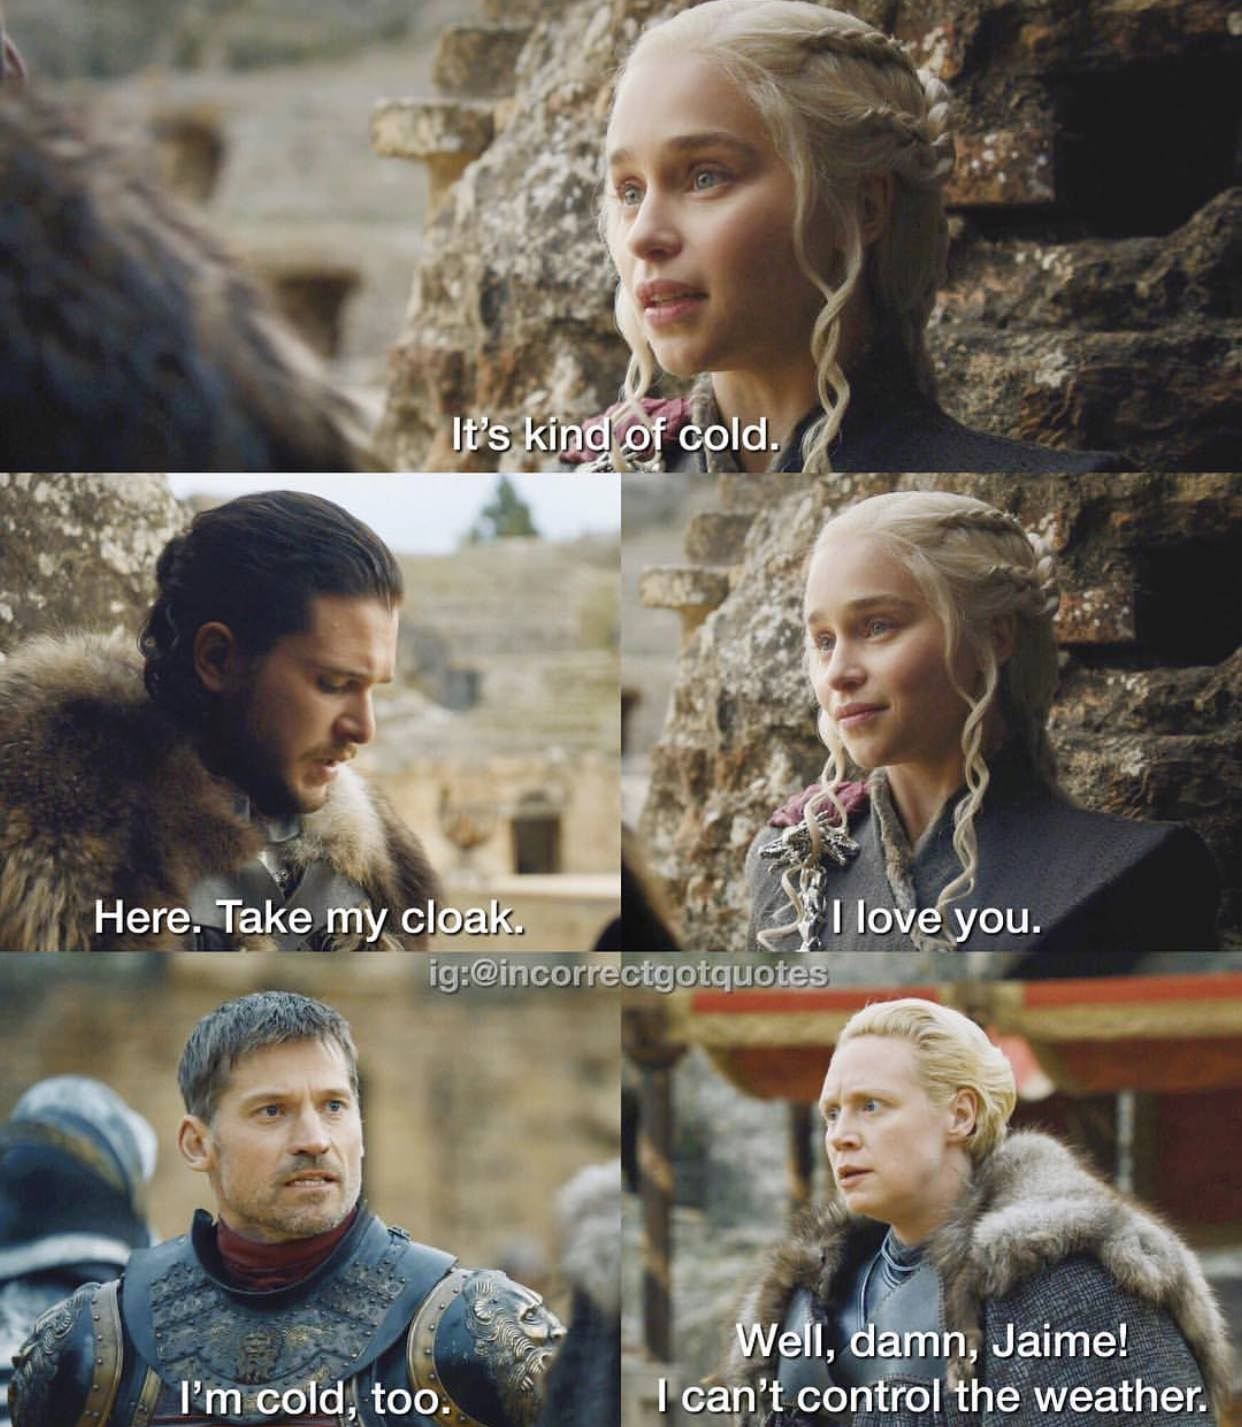 Incorrect Game of Thrones Quotes